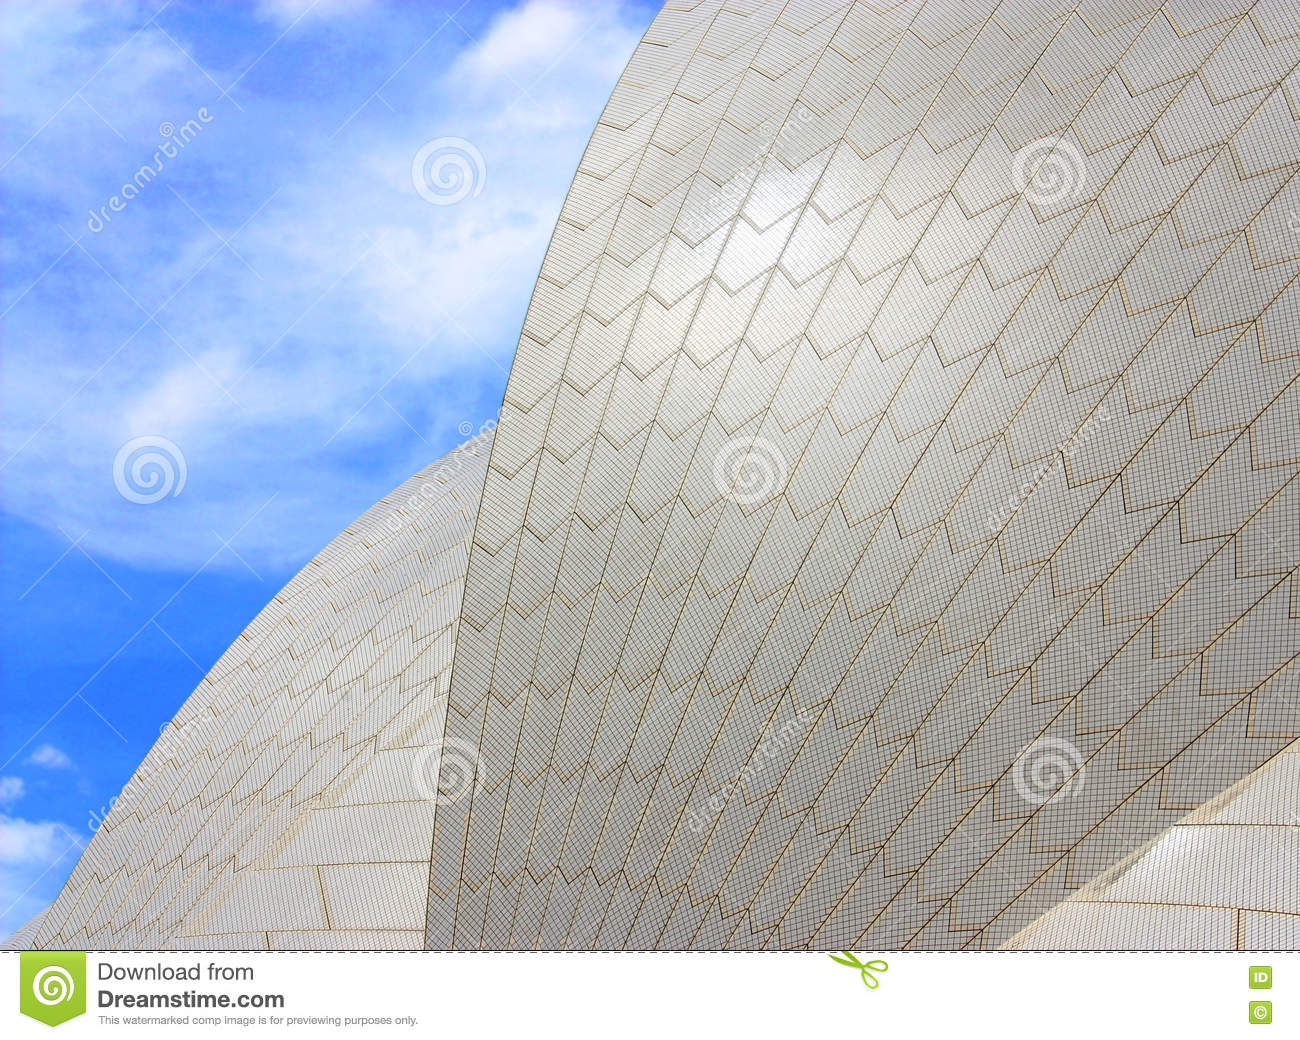 Ceramic tiles on sydney opera house editorial photo image 81481616 ceramic tiles on sydney opera house doublecrazyfo Image collections